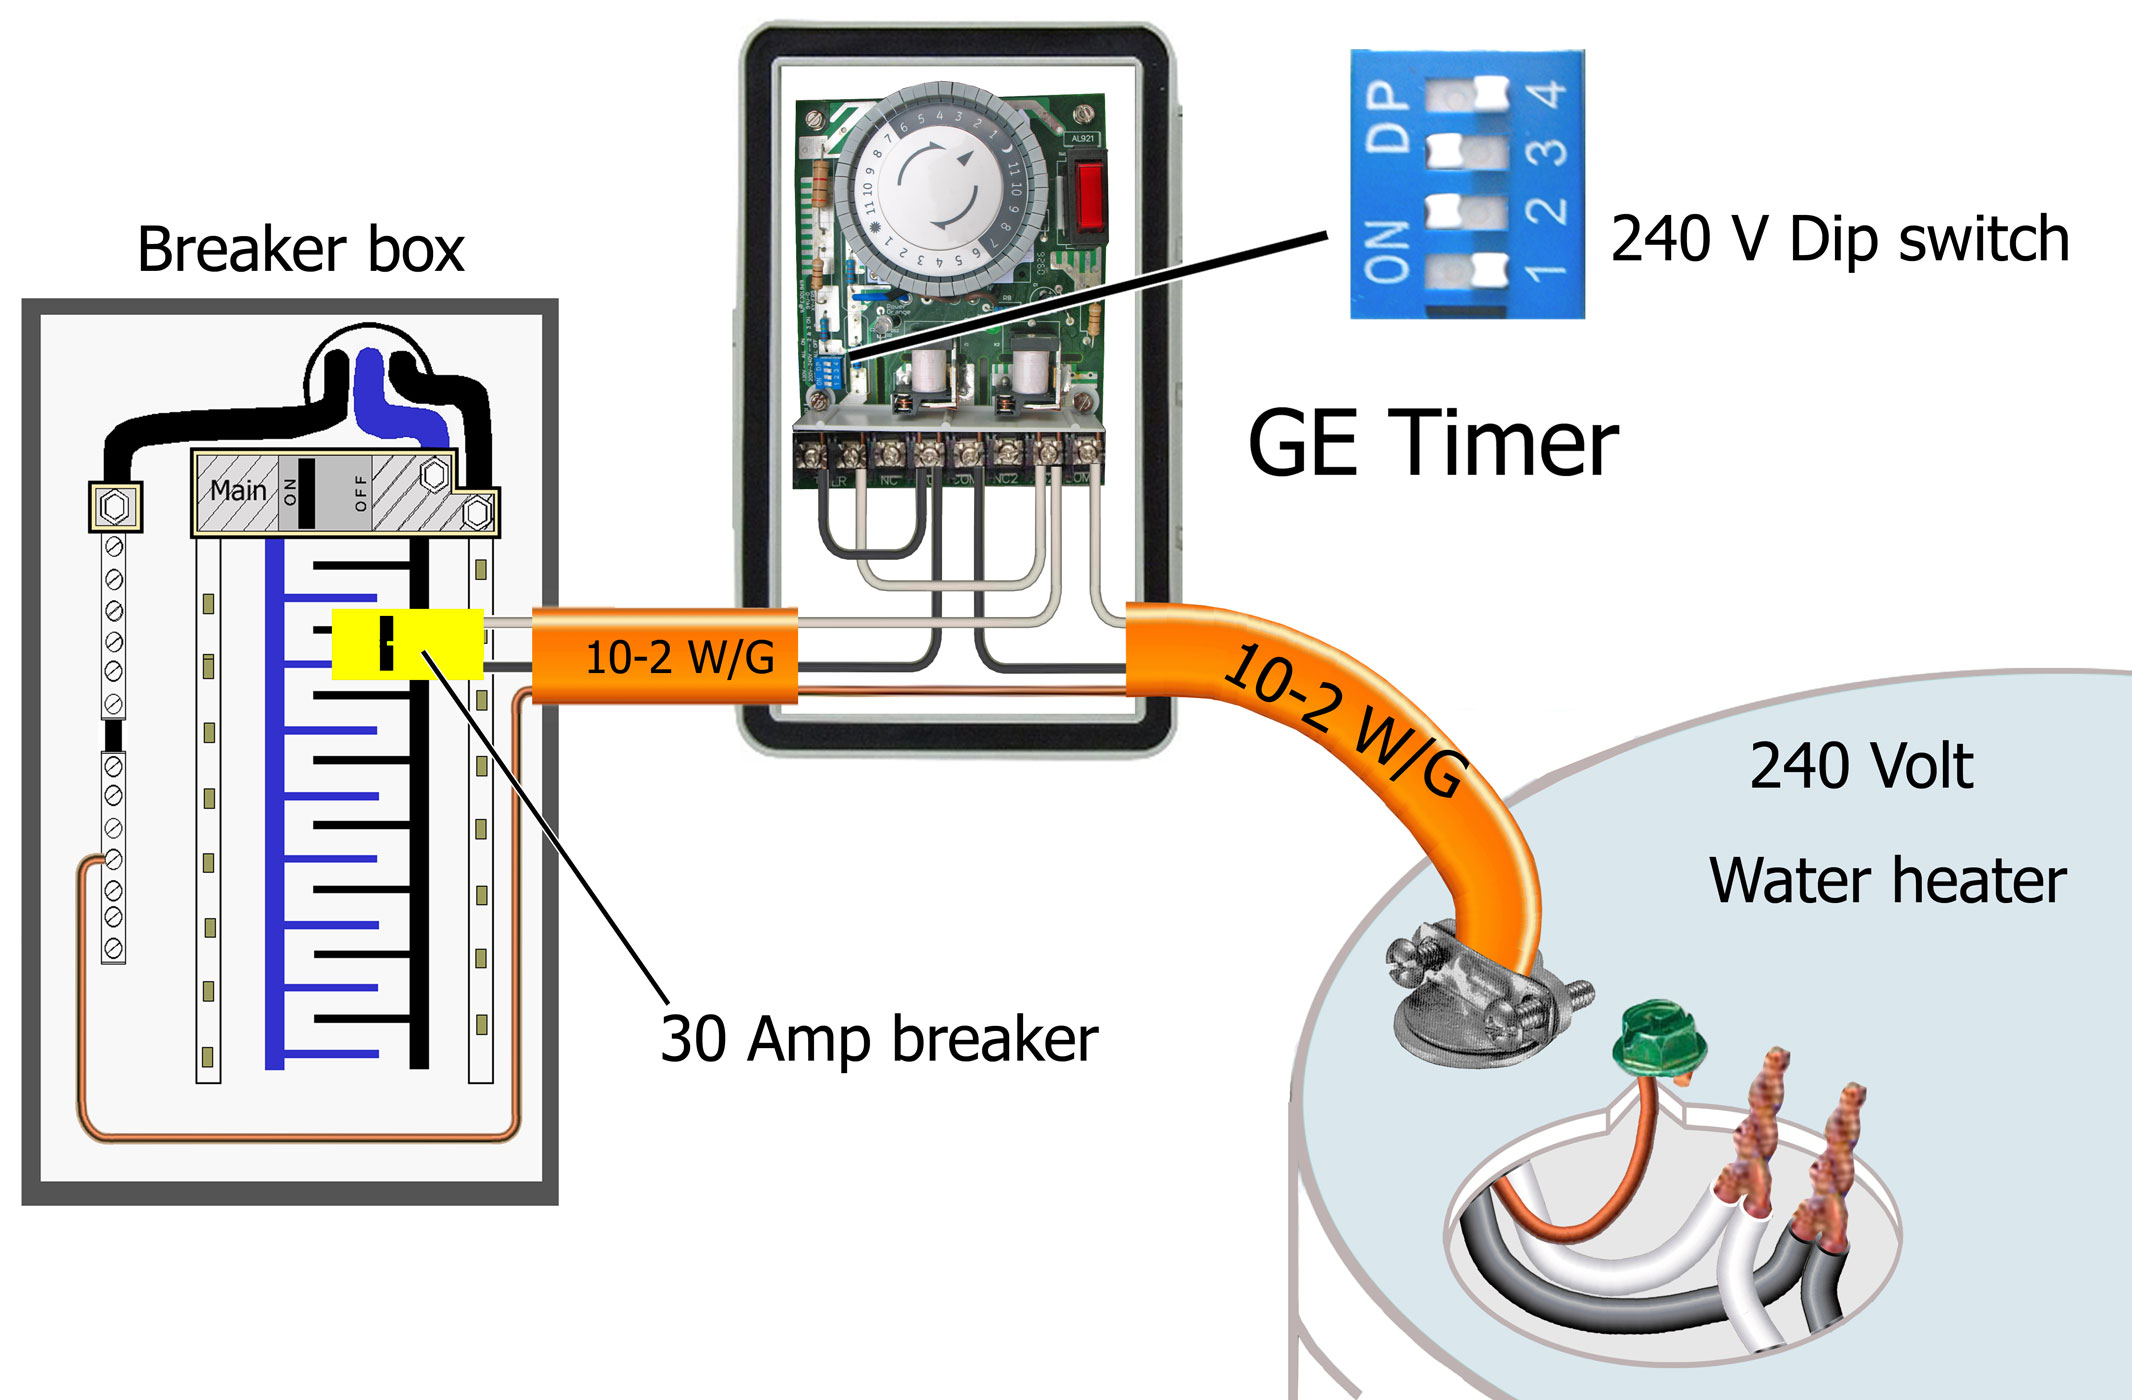 how to wire ge 15207 timer timer for water heater see timer circuit